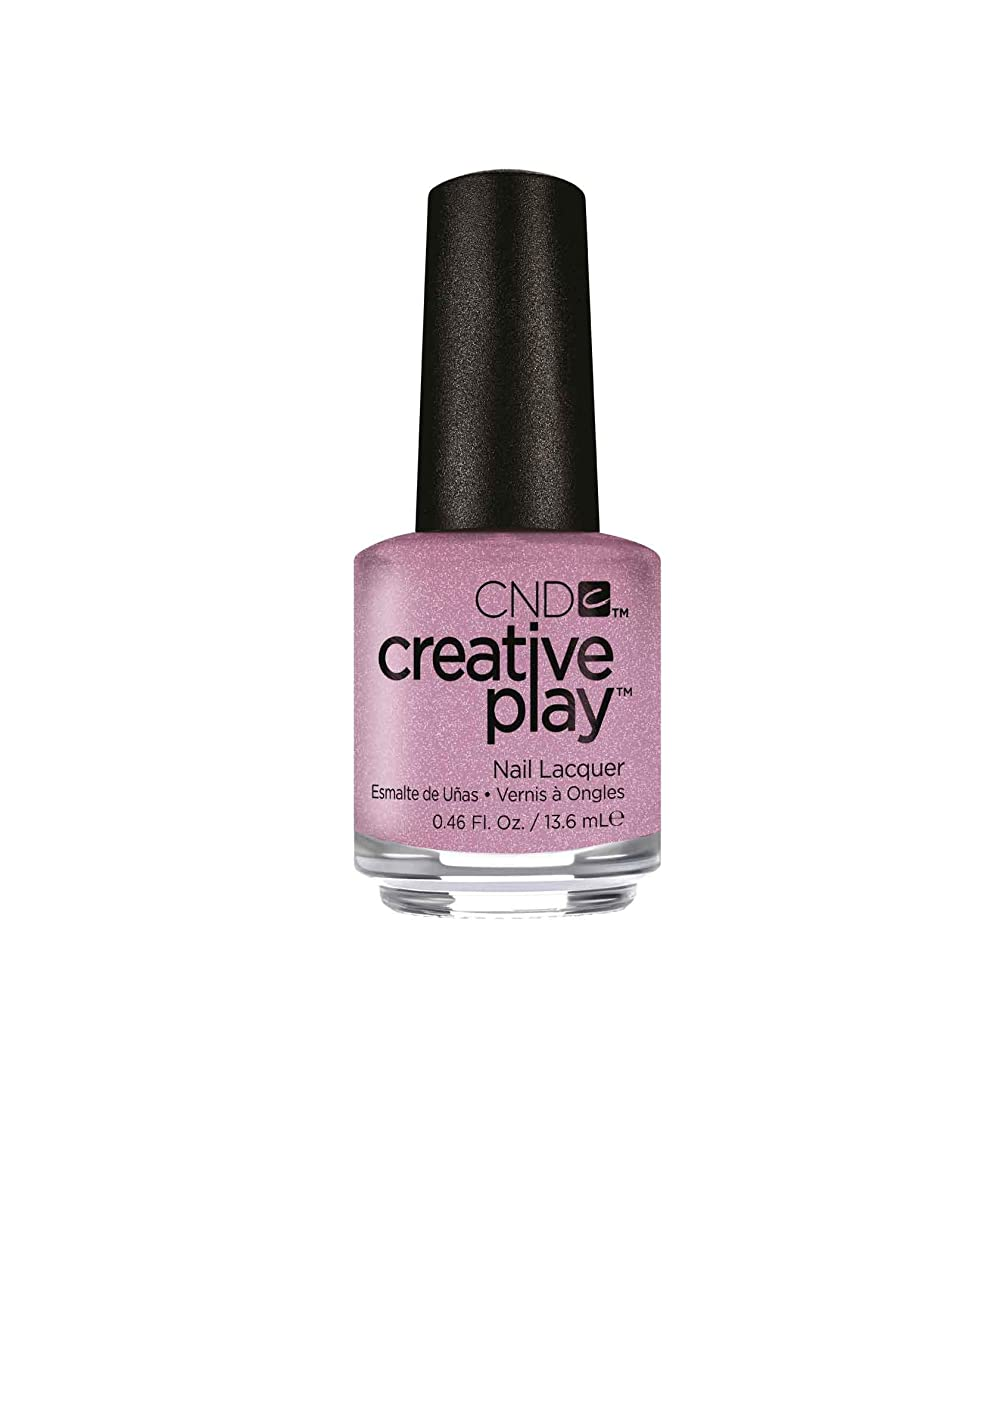 スプレーせっかち子孫CND Creative Play Lacquer - I Like to Mauve It - 0.46oz / 13.6ml